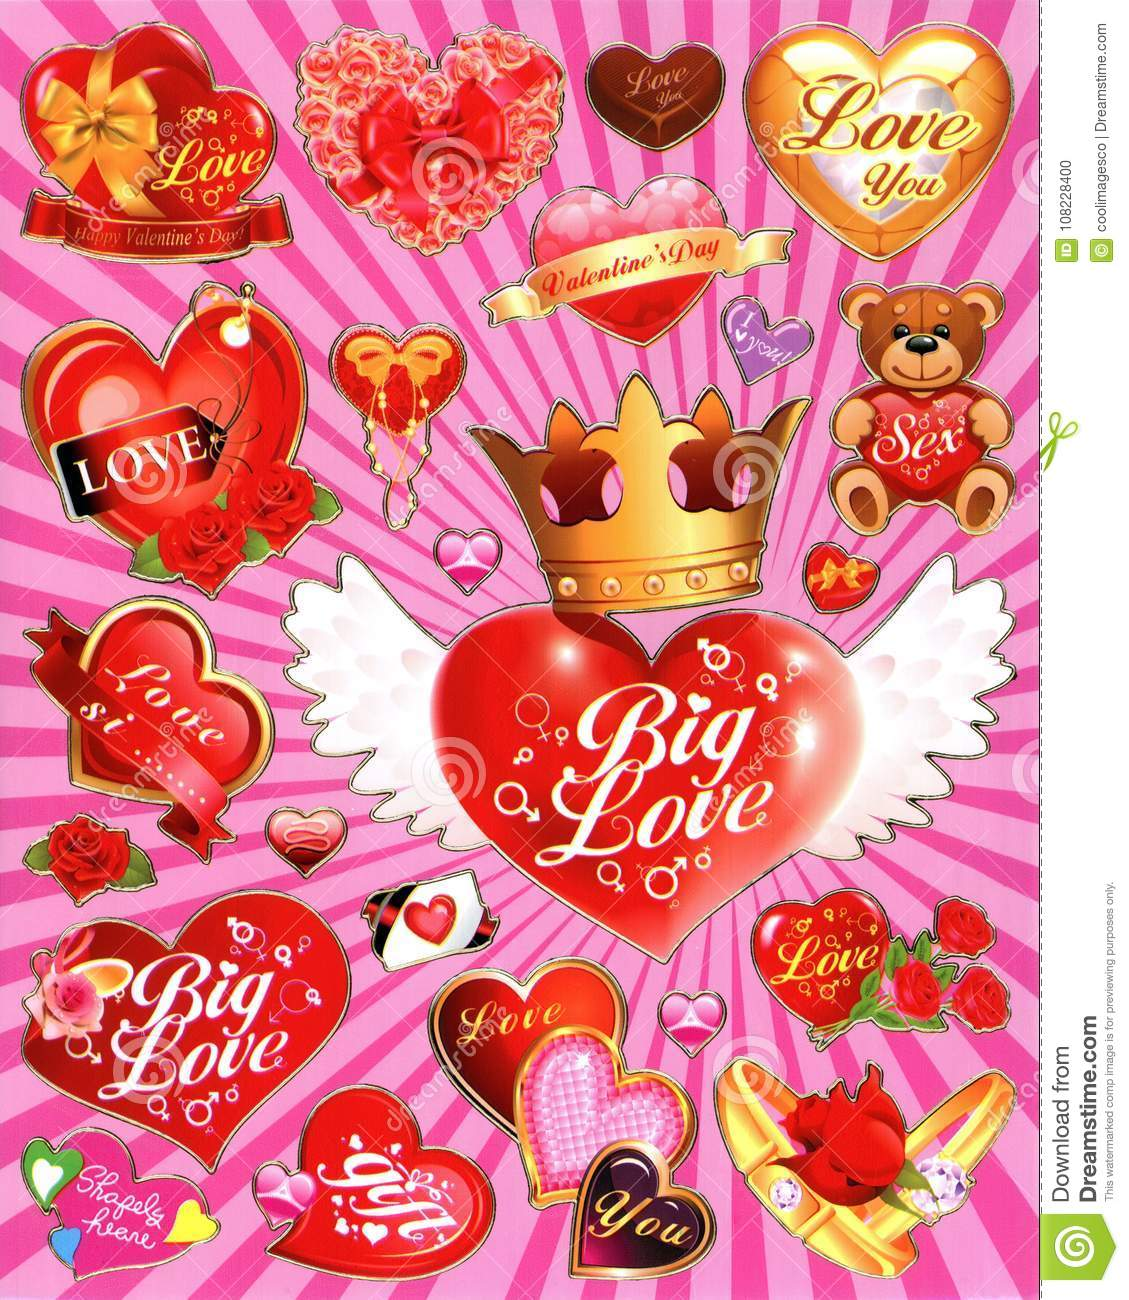 An Illustration Of Heart Love Crown And Teddy Bear As A